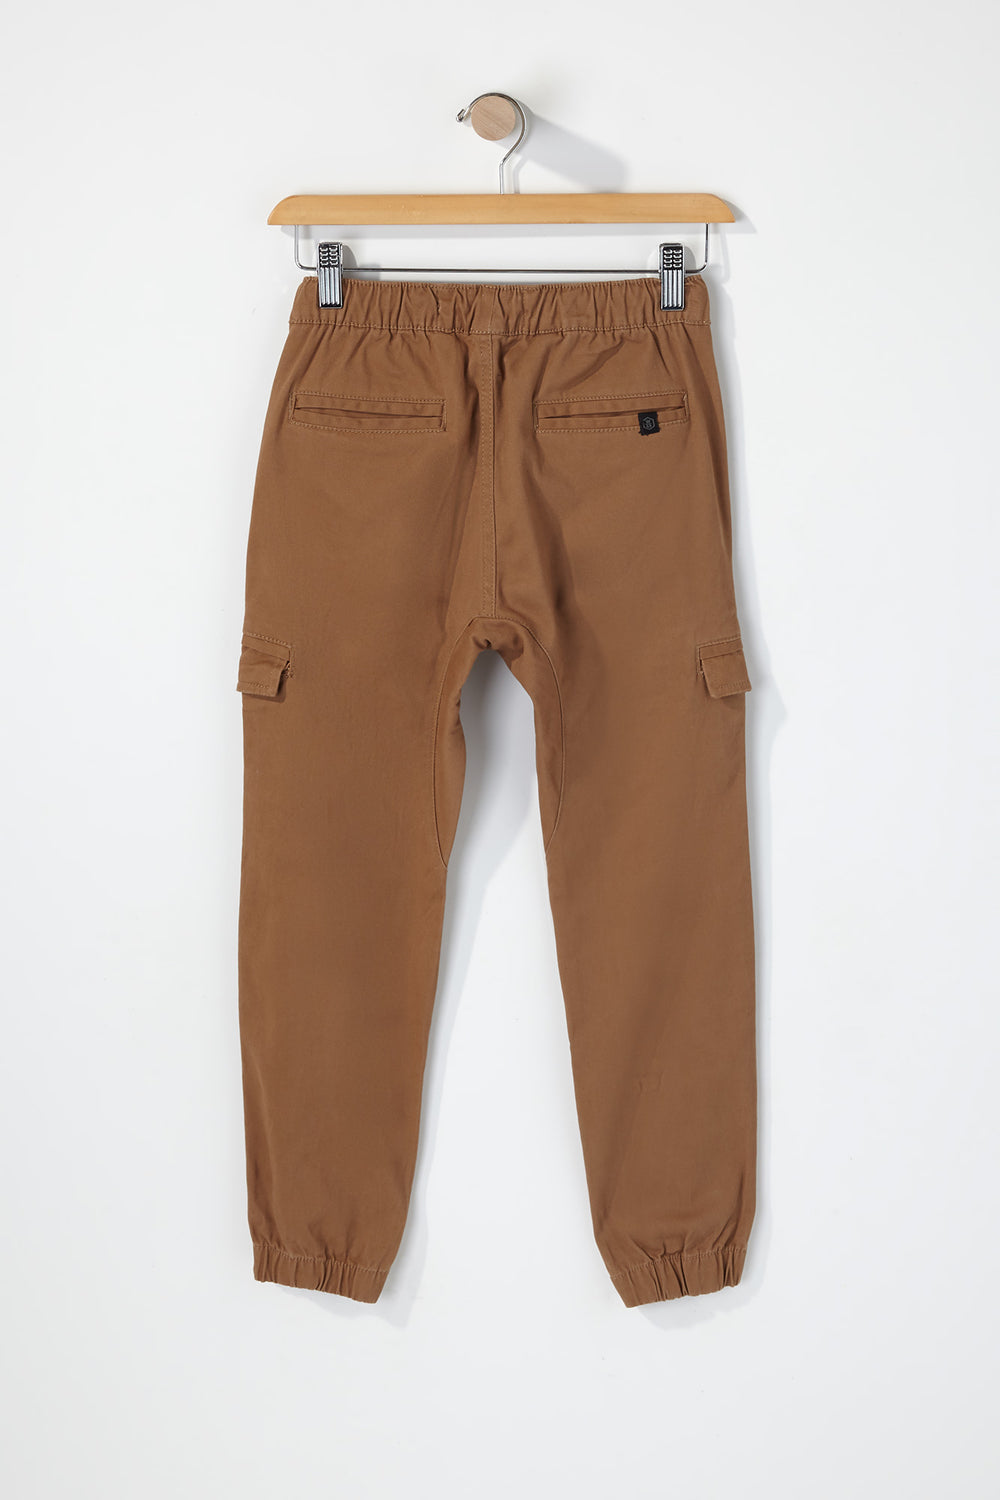 West49 Boys Cargo Jogger Tan